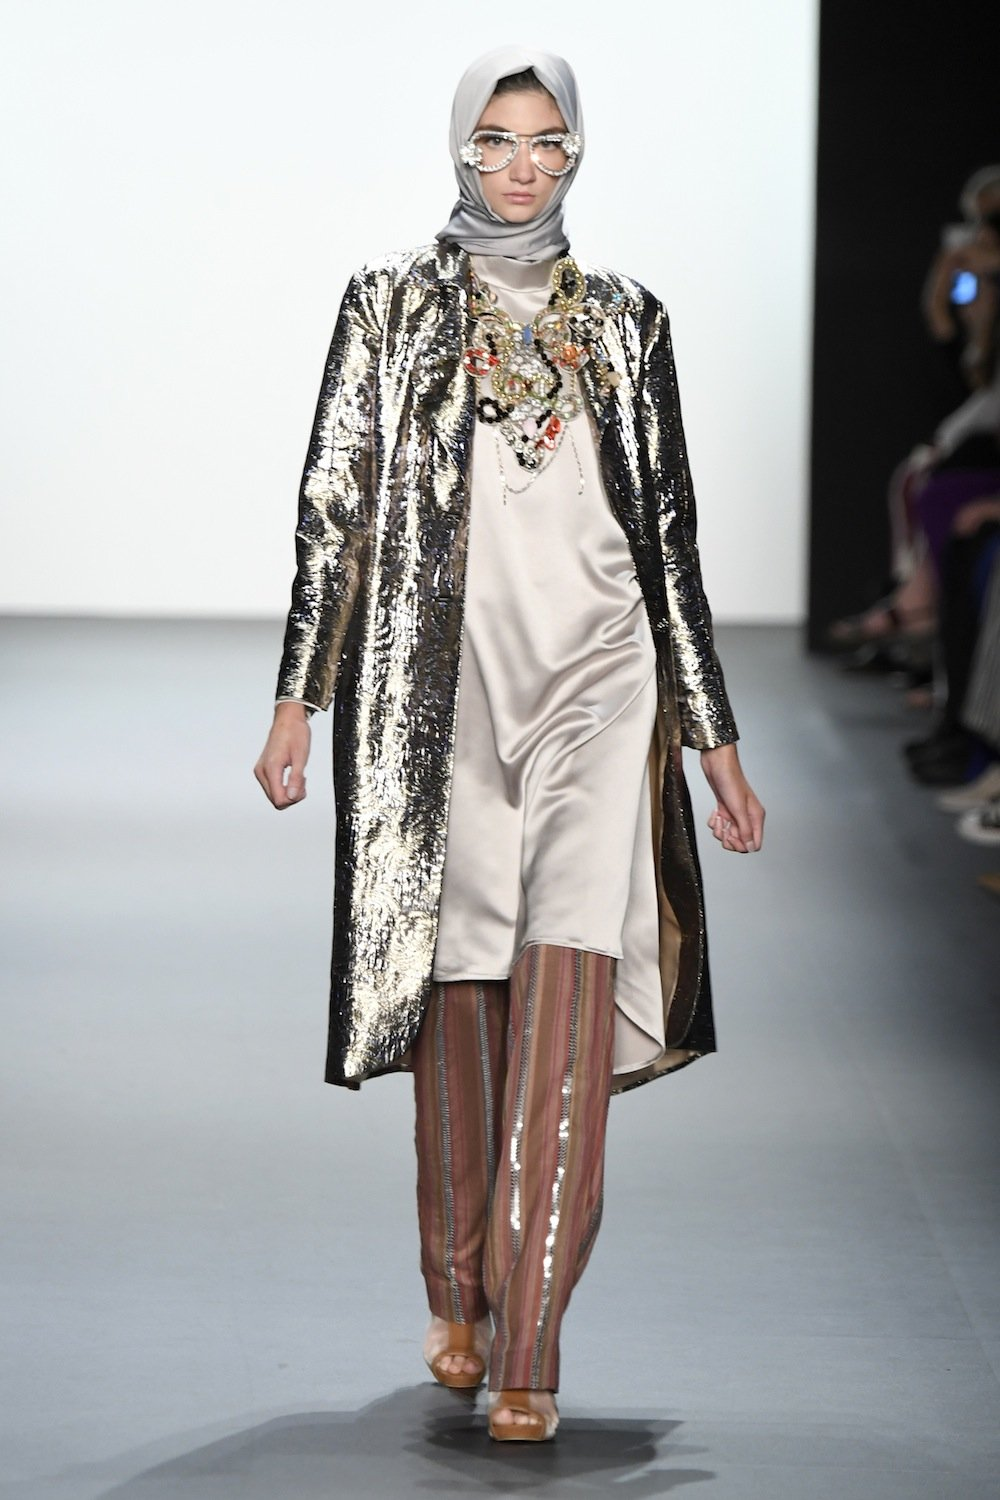 Hasibuan was not timid with metallics and ornate accessories